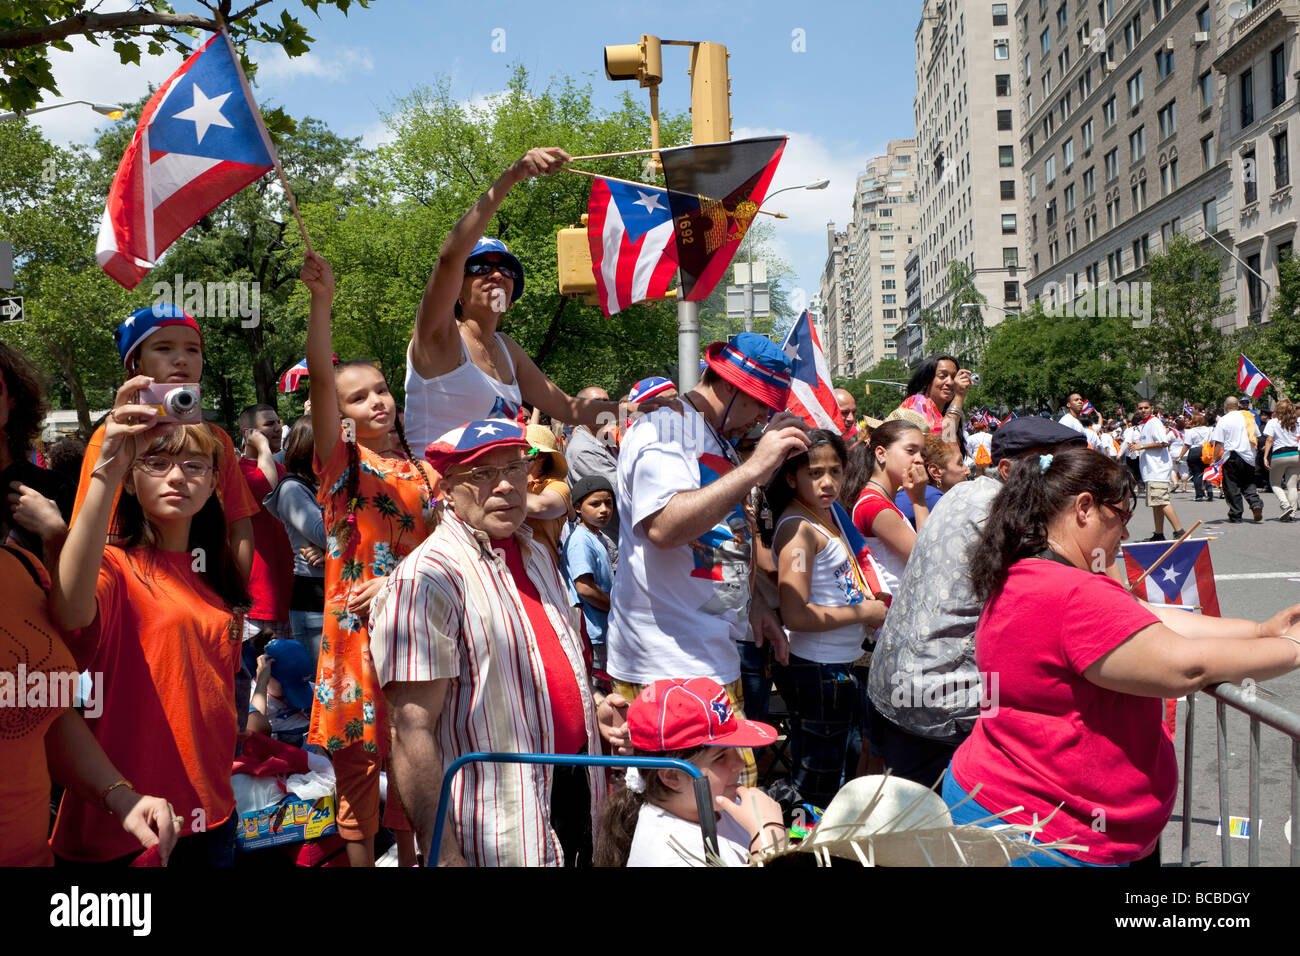 Annual Puerto Rican day parade on 5th Avenue - Stock Image